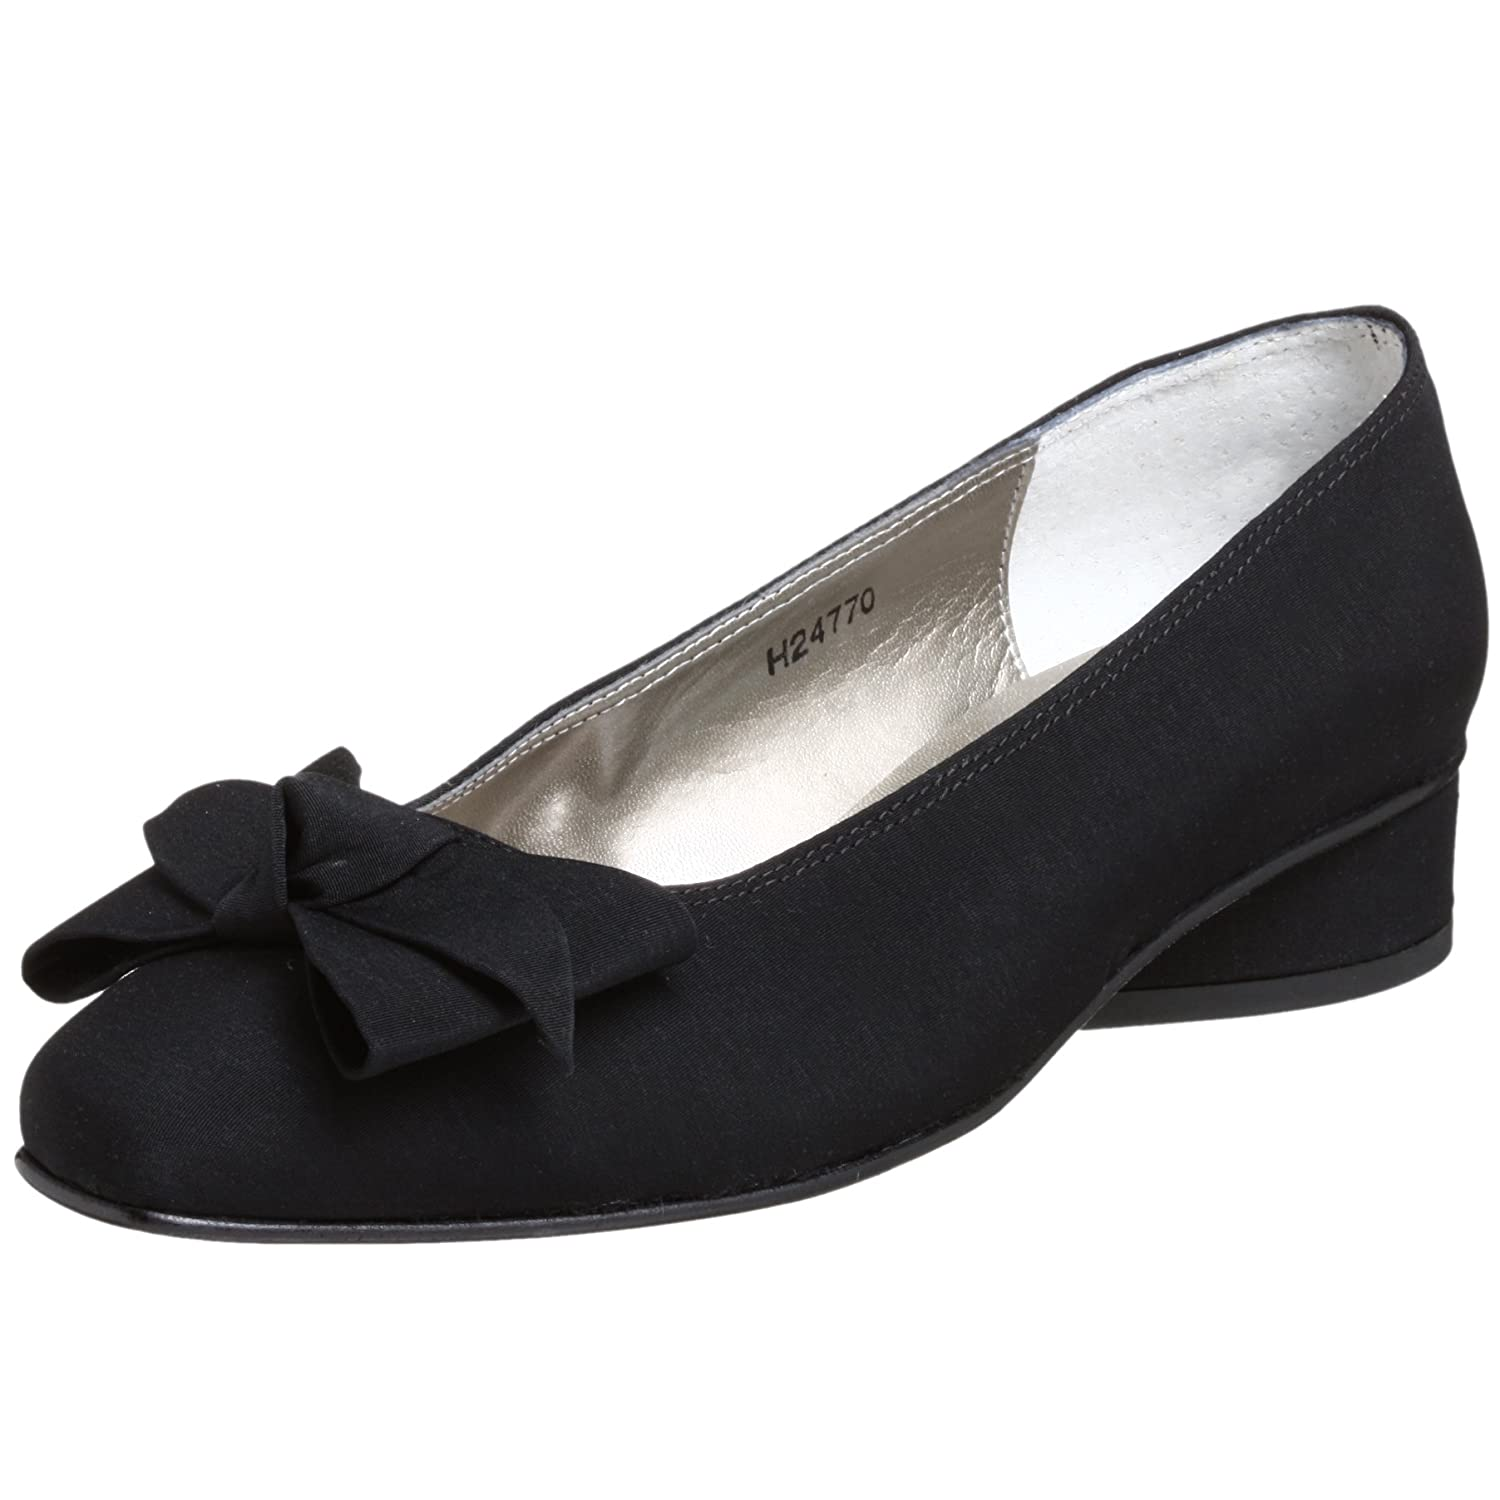 Cool Black Flat Shoes For Women Black Dress Shoes Women Women Dresses